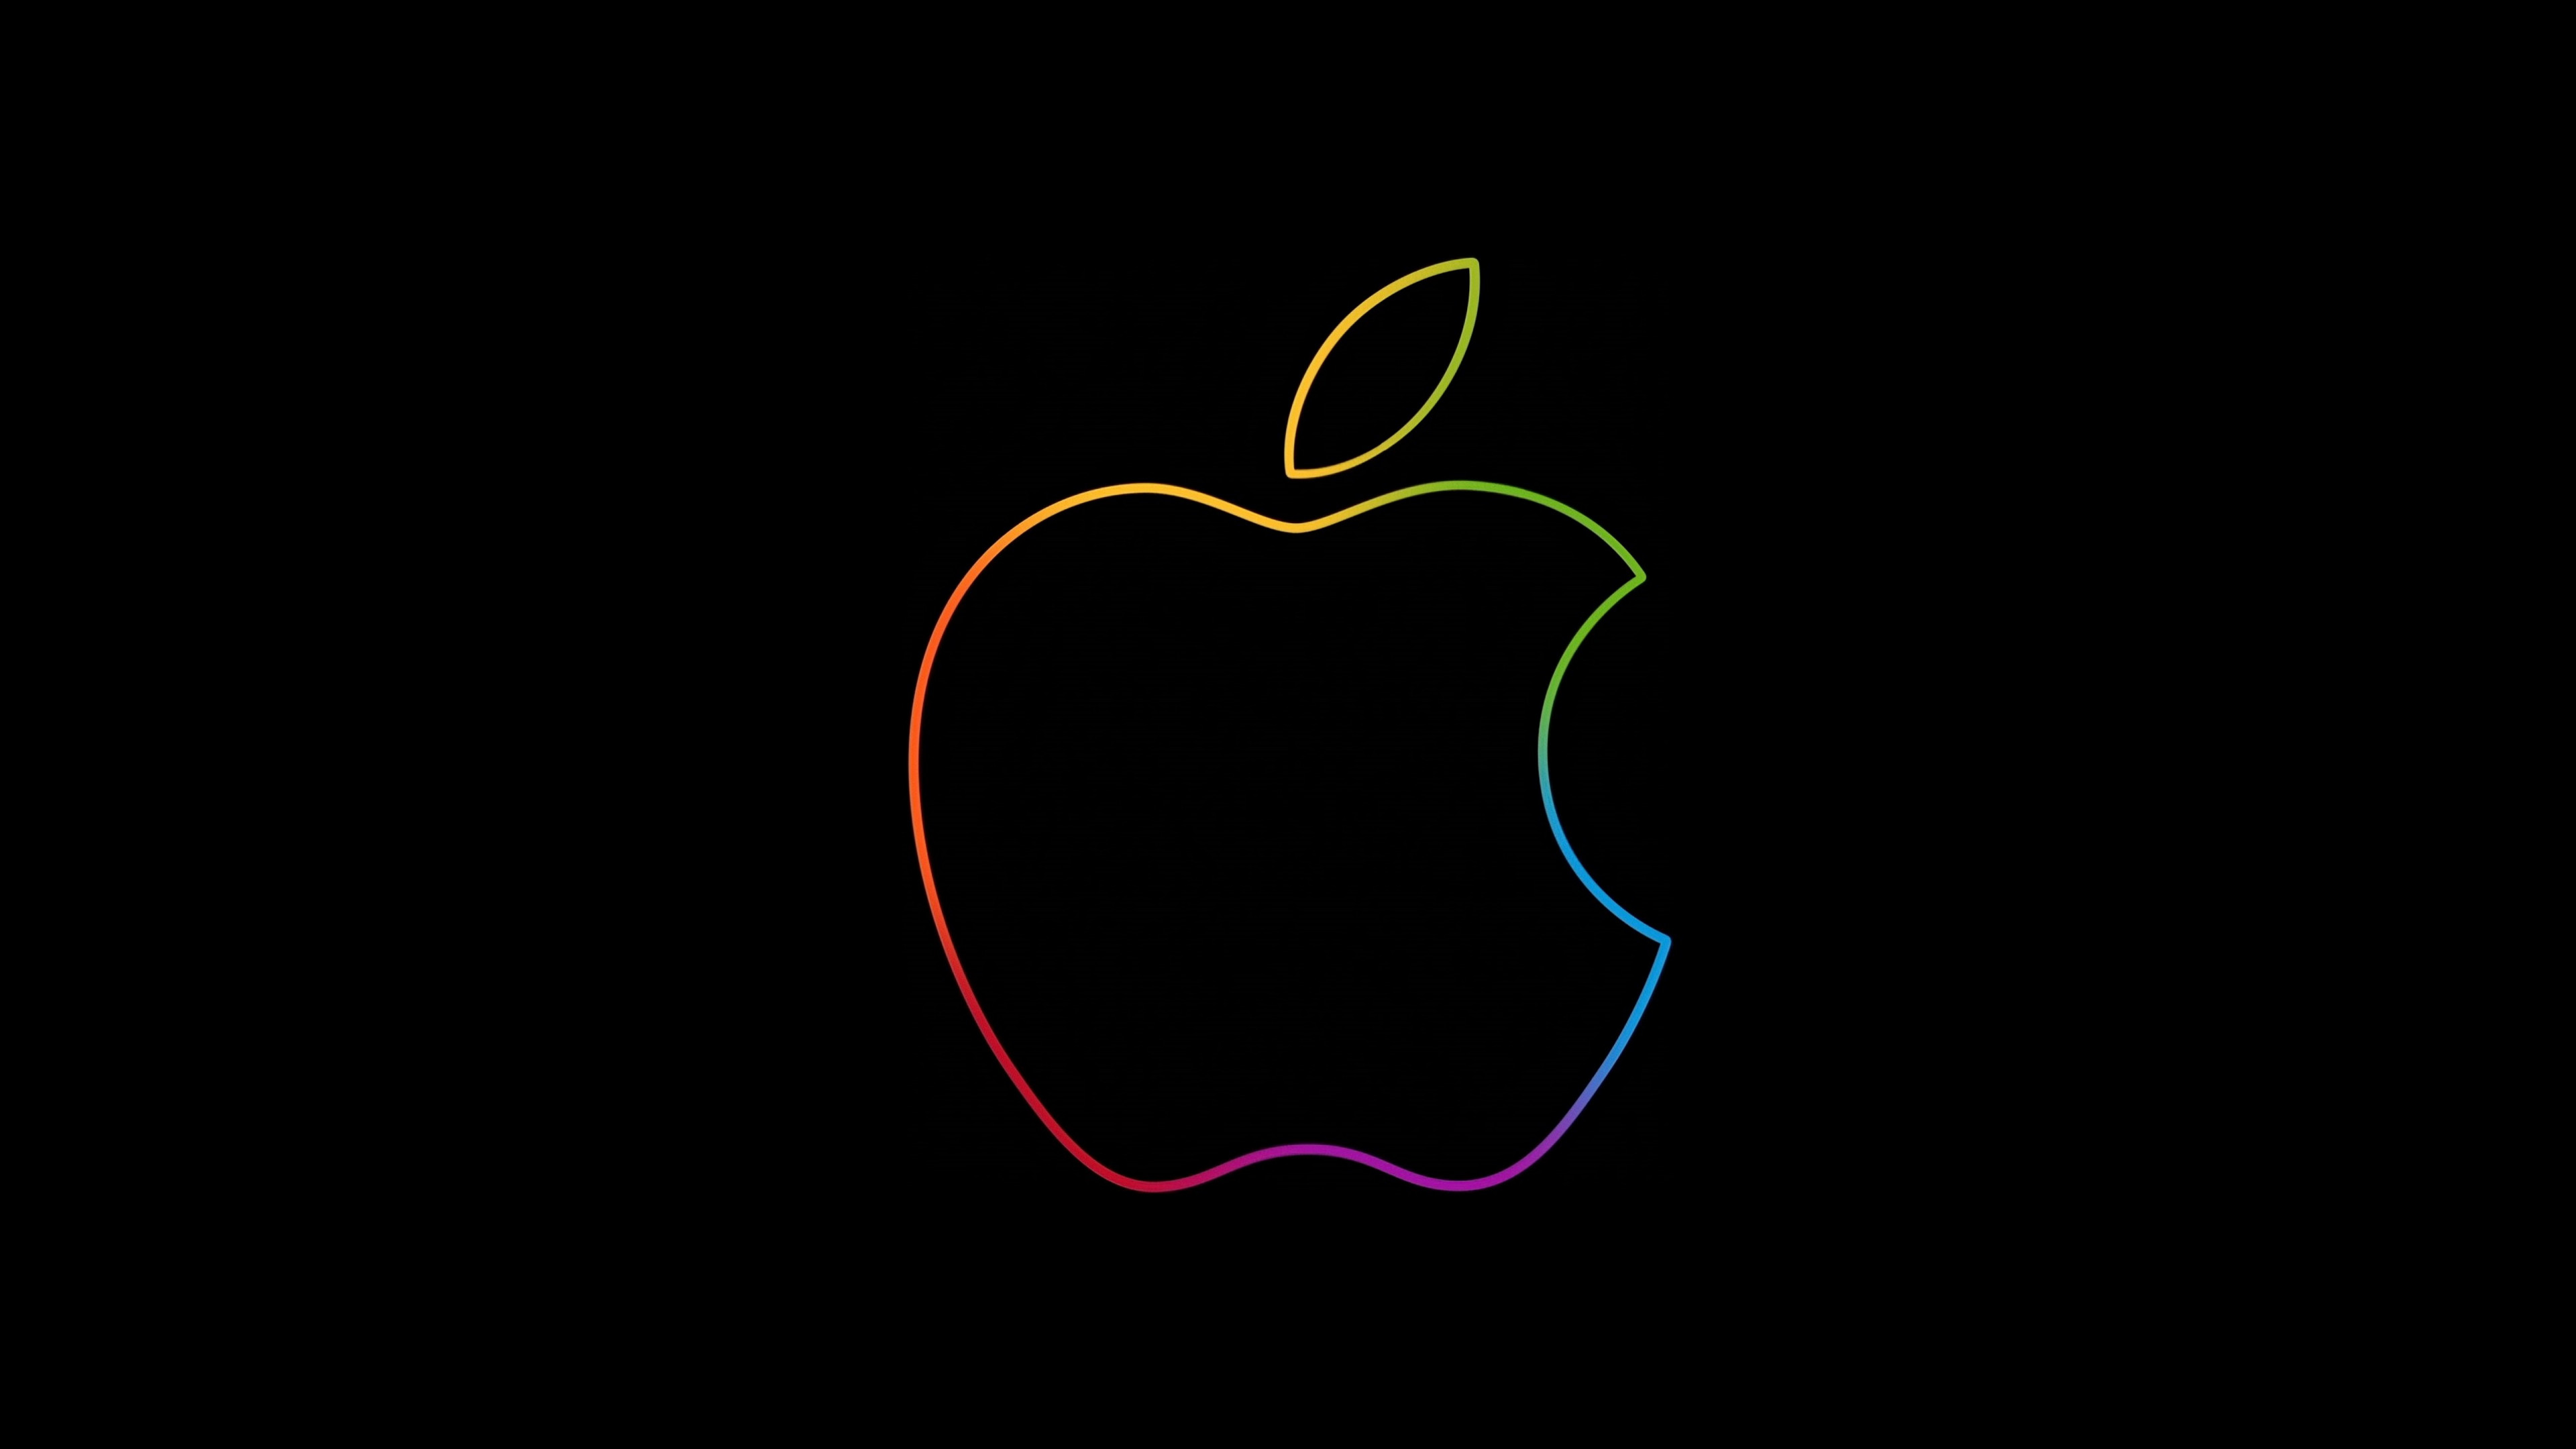 The famous Apple logo wallpaper 3840x2160